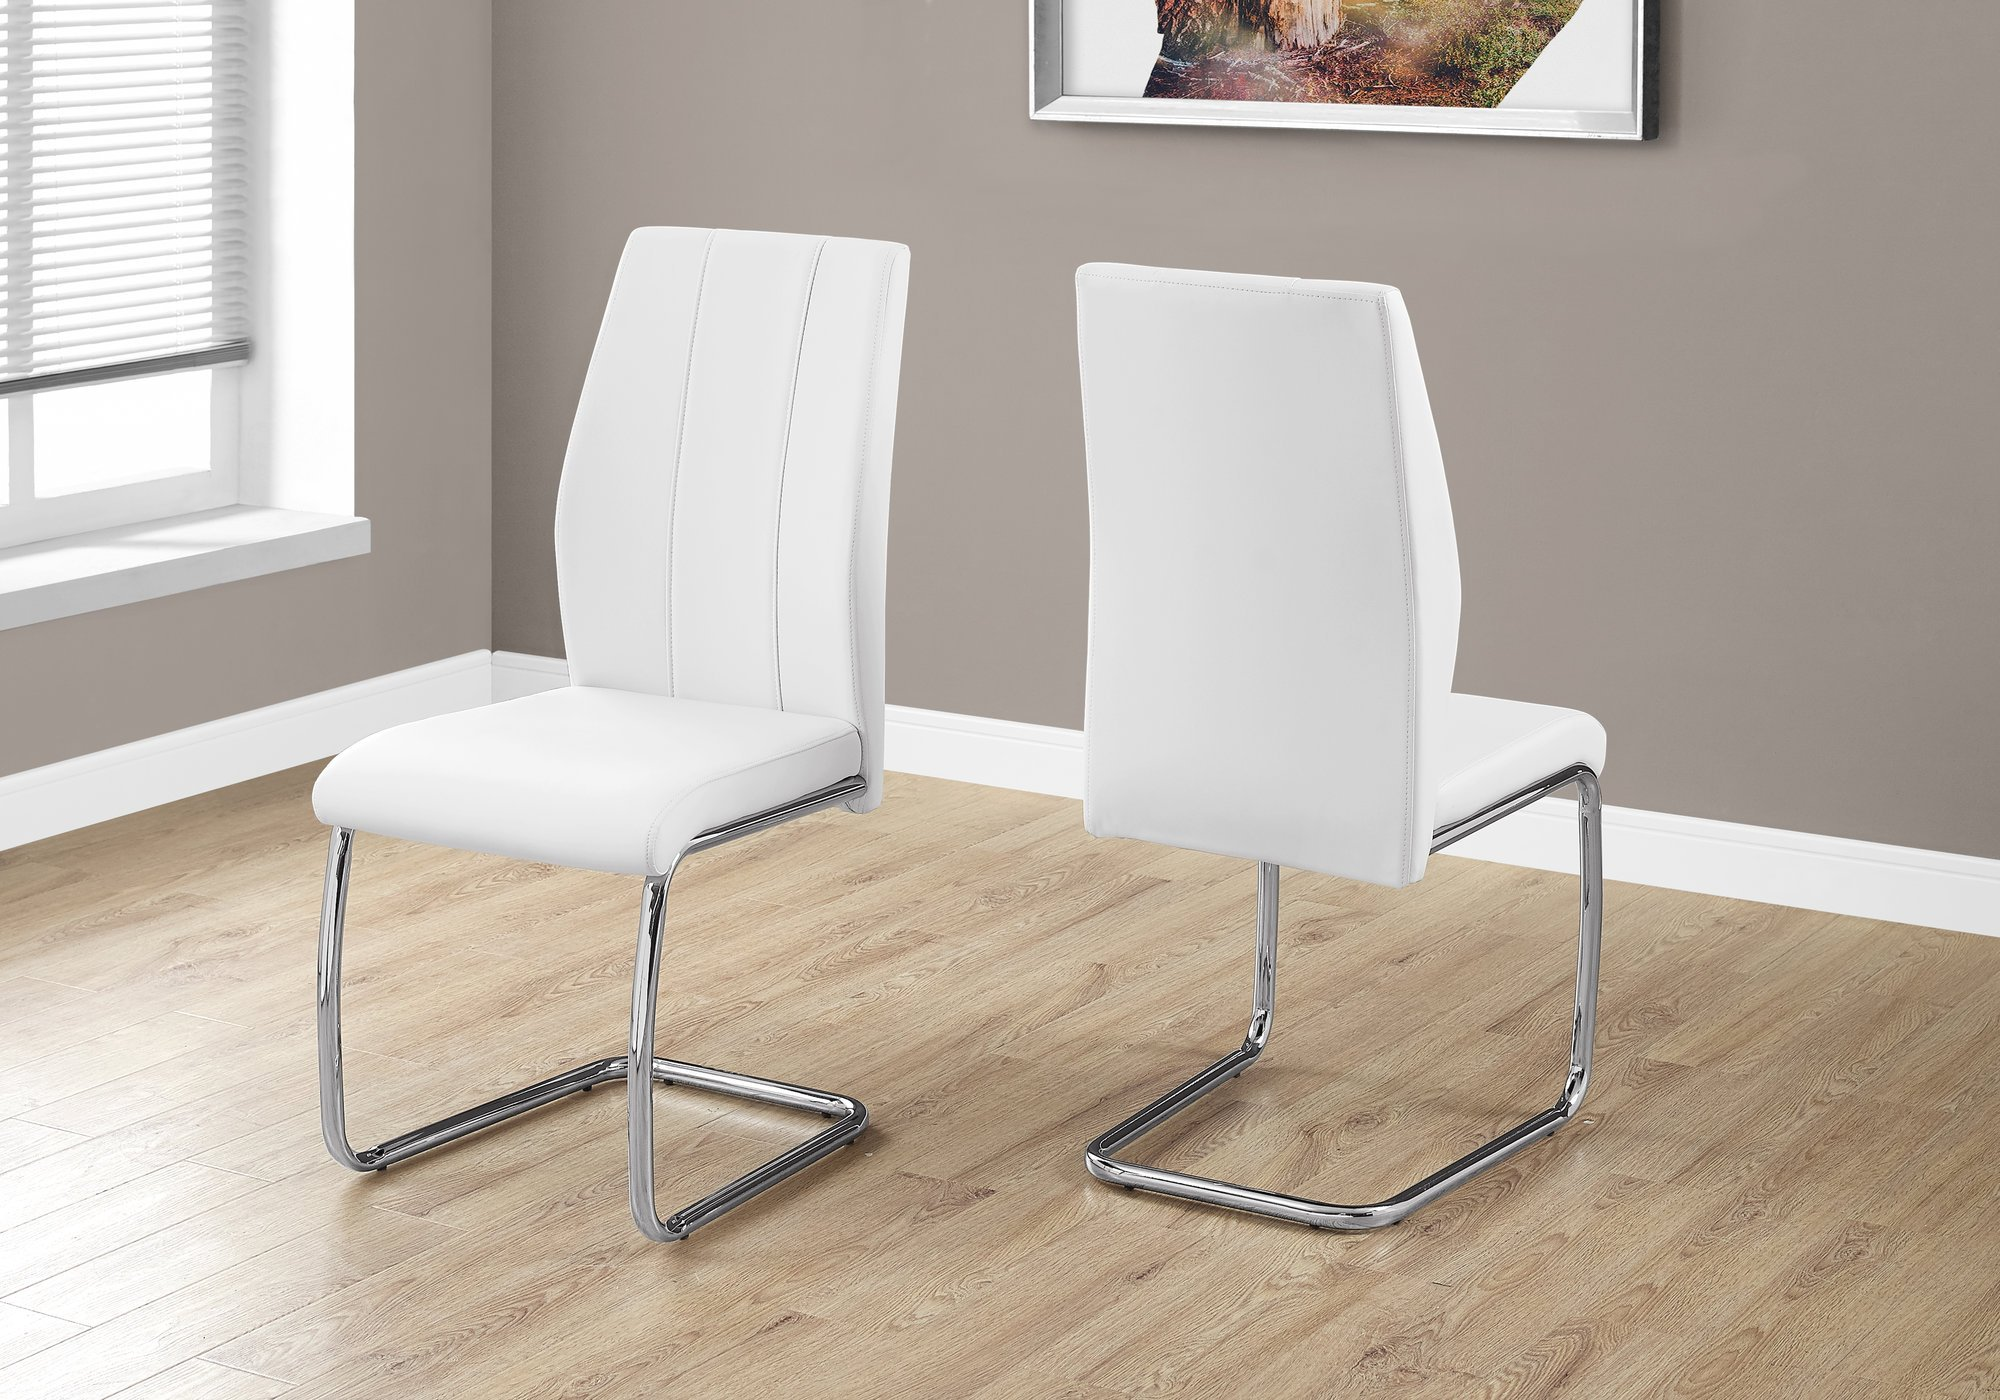 Monarch Specialties I I 1075 2 Piece Dining CHAIR-2PCS/ 39'' Leather-Look/Chrome, 17.25'' L x 20.25'' D x 38.75'' H, White